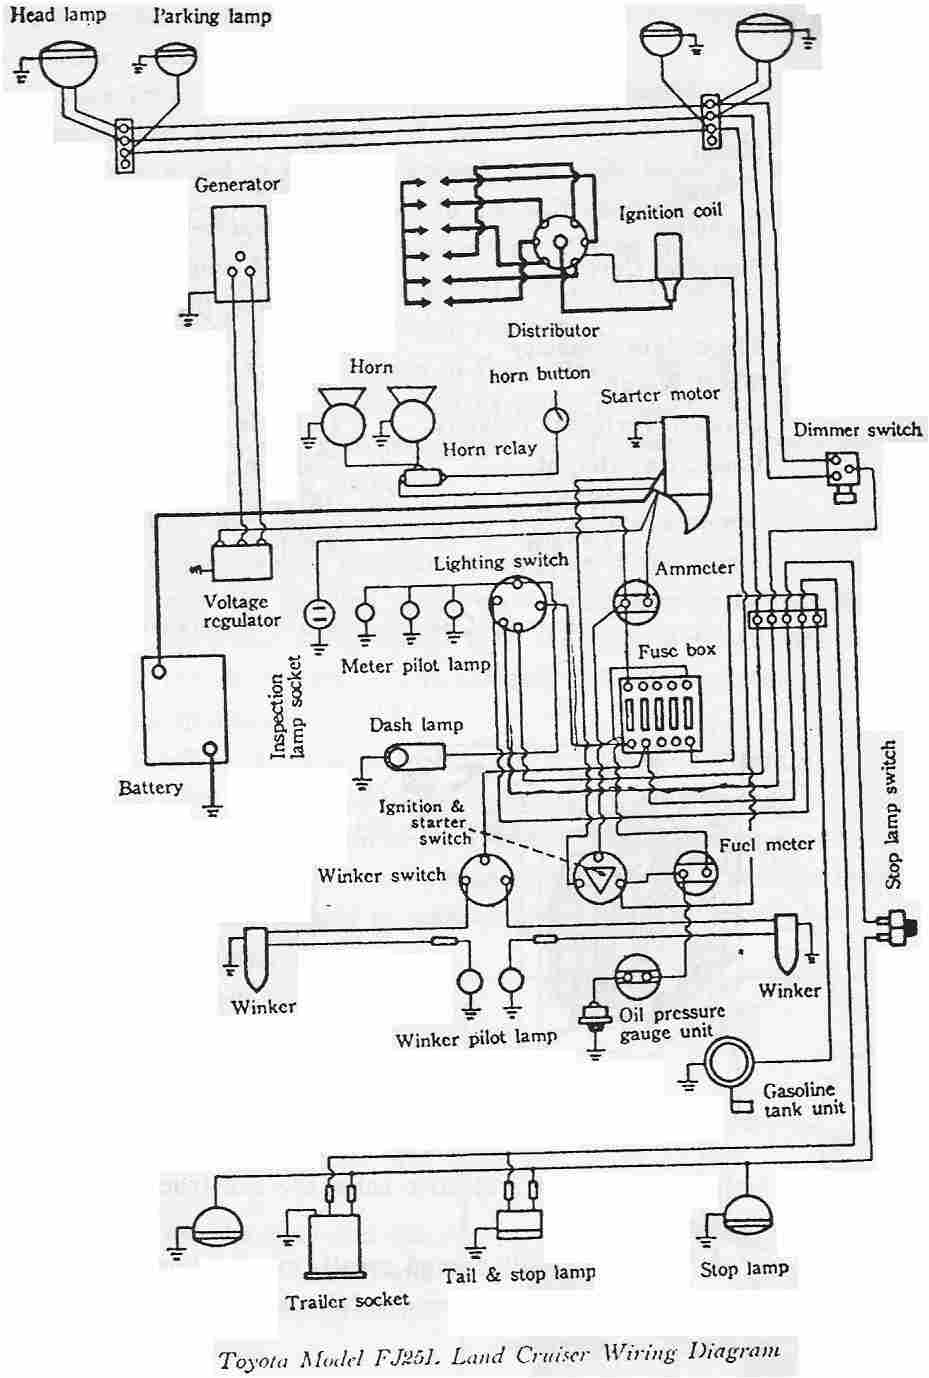 Toyota Land Cruiser FJ25 Electrical Wiring Diagram need help understanding my wiring diagram readingrat net Toro Z420 Right Transaxle Replacement at bayanpartner.co